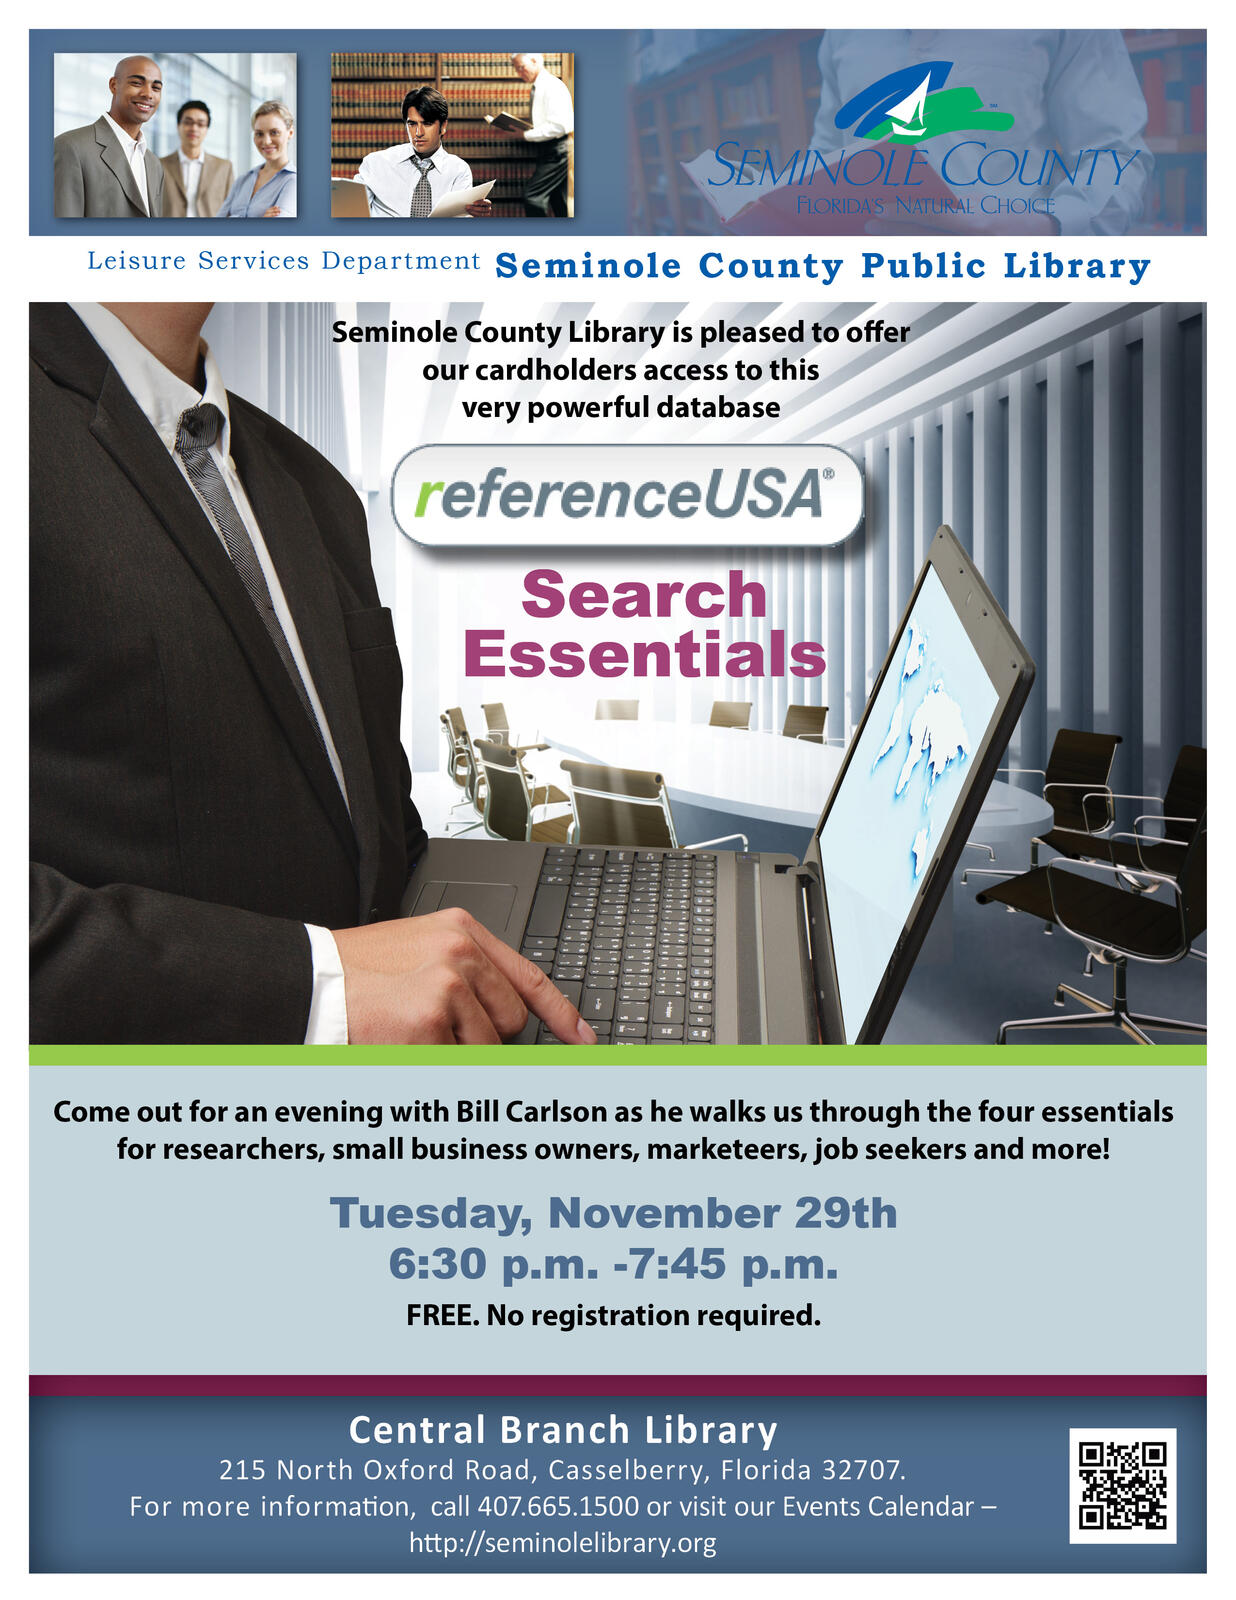 Reference USA Search Essentials @ the Library (Seminole